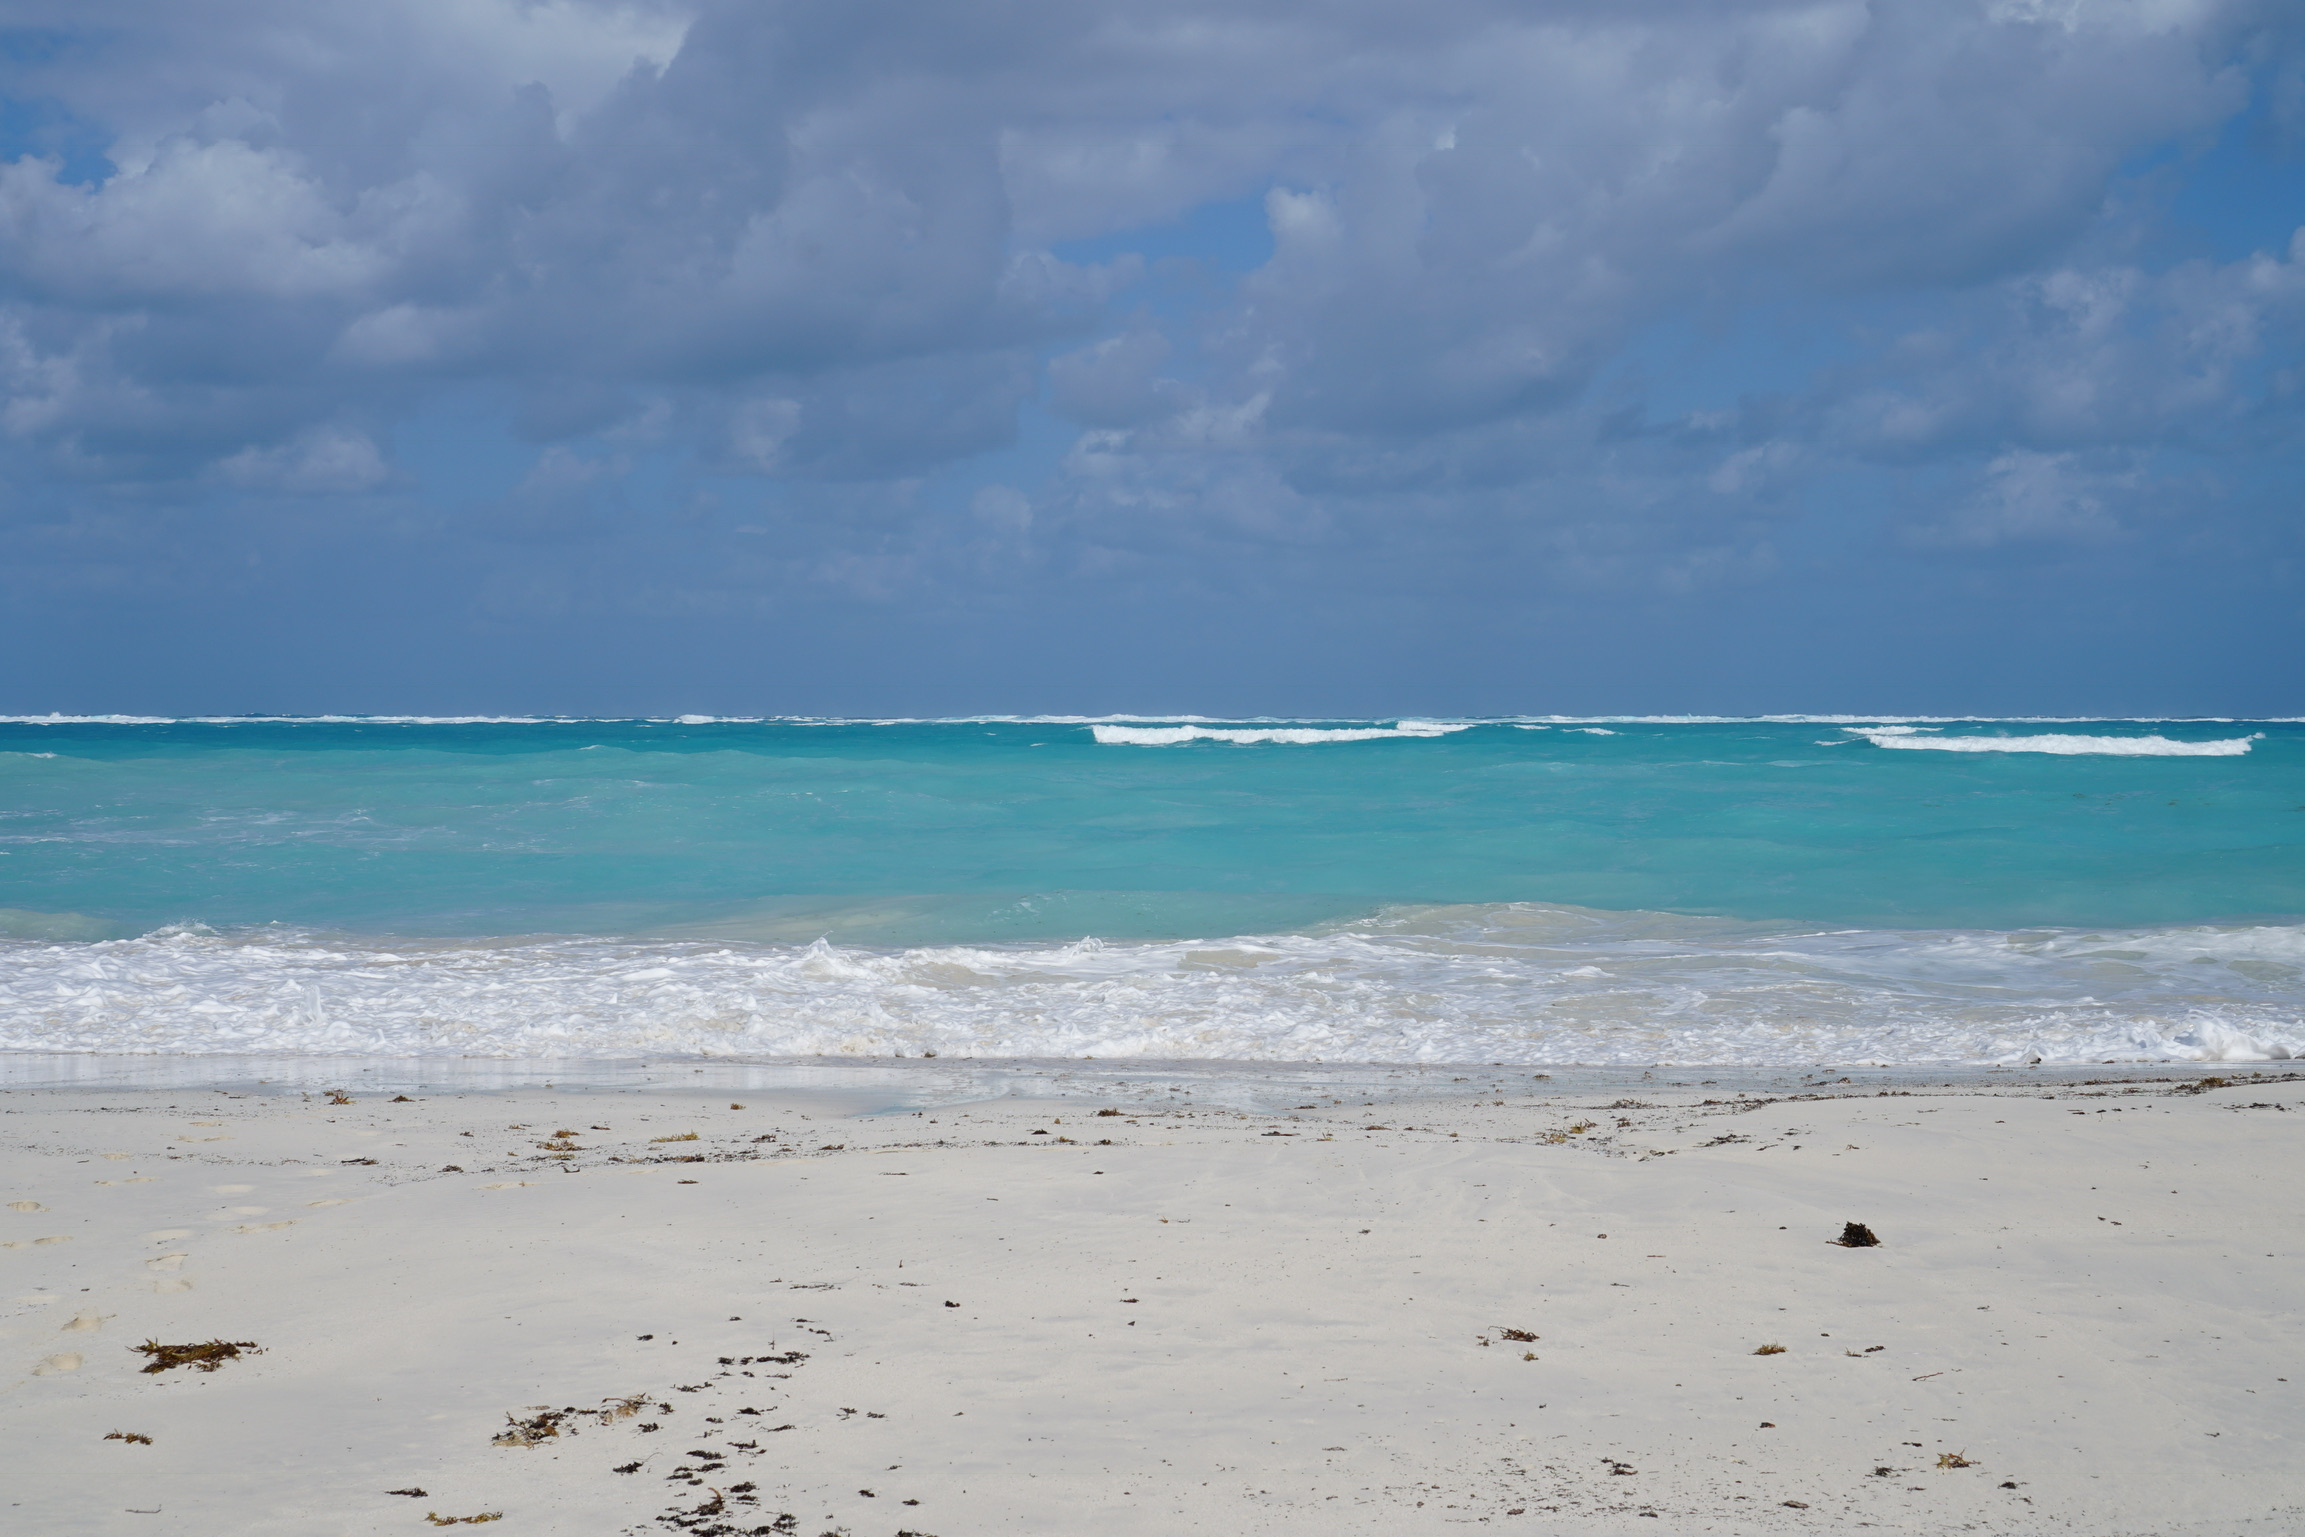 Insiders Guide to Turks & Caicos_7.JPG